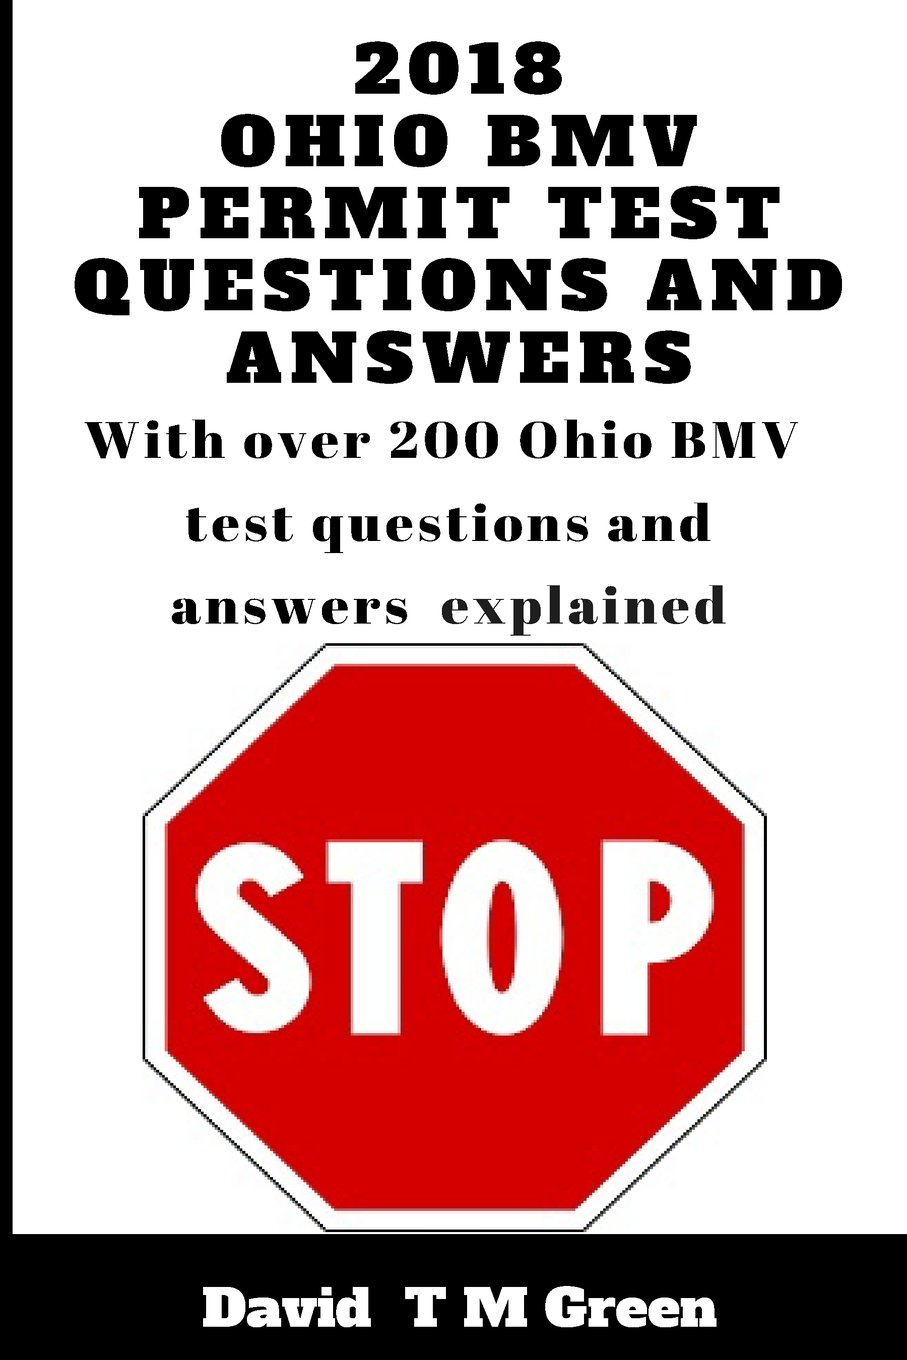 Download 2018 Ohio BMV Permit Test Questions And Answers: Over 200 BMV Test Questions Answered And Explained ebook